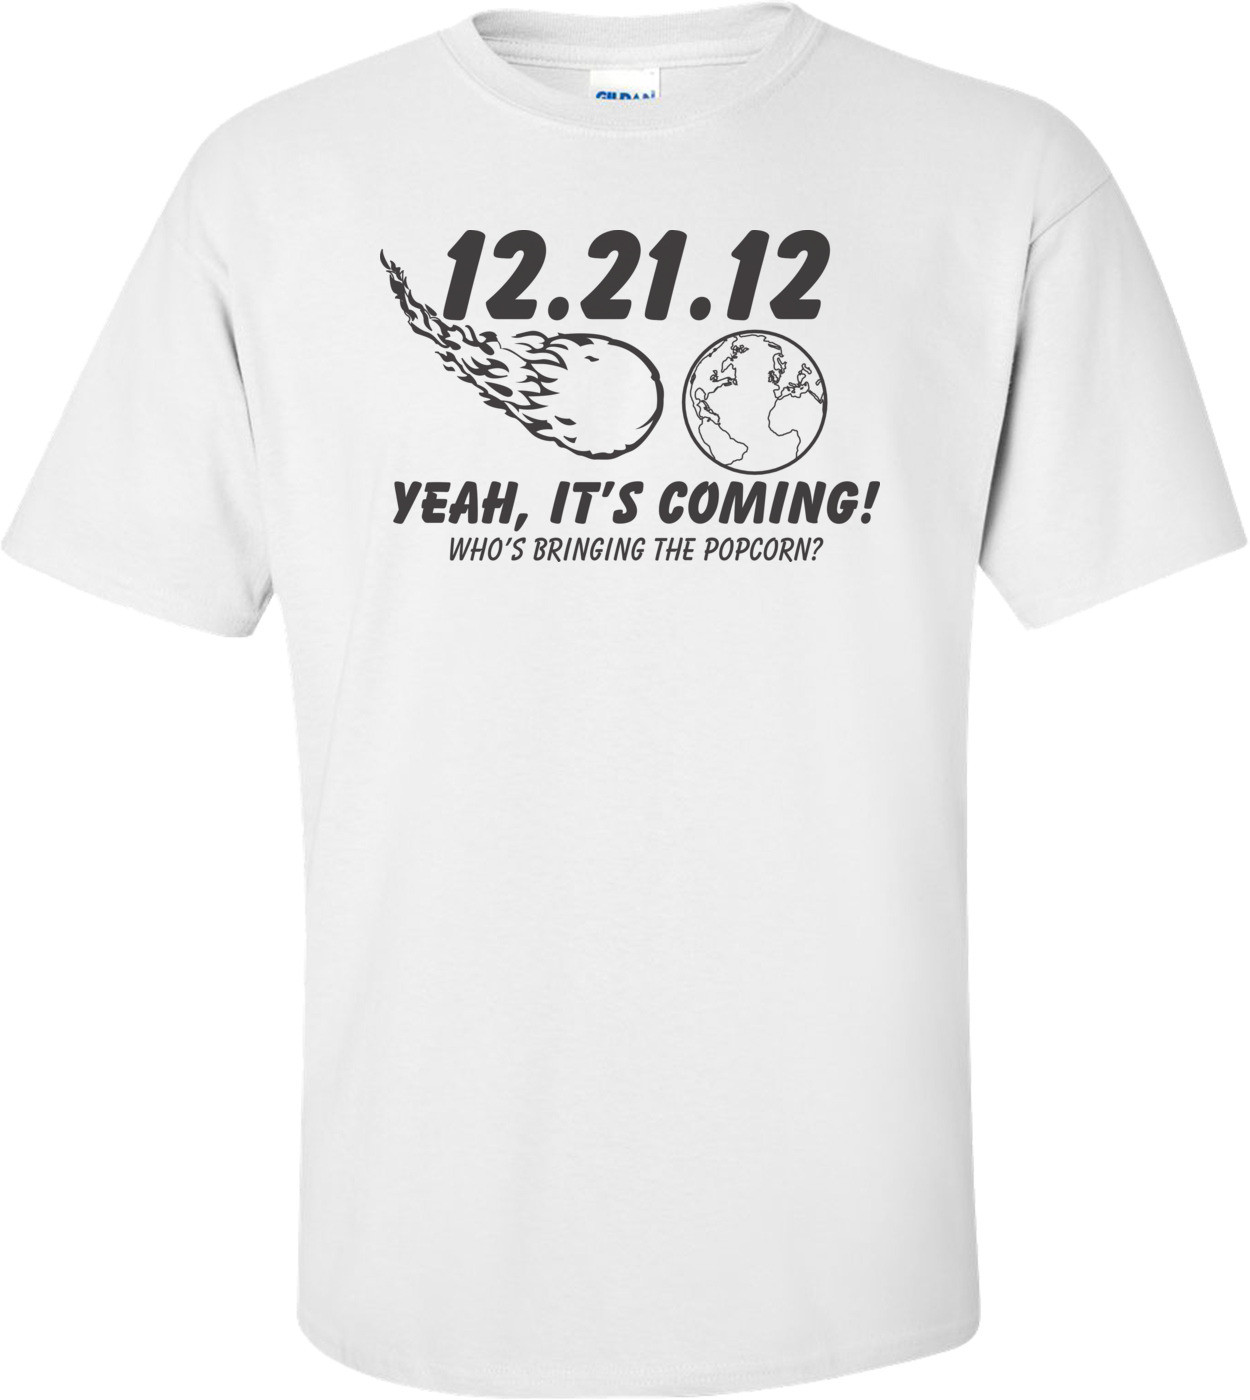 12.21.12 Yeah, It's Coming! Who's Bringing The Popcorn? T-shirt